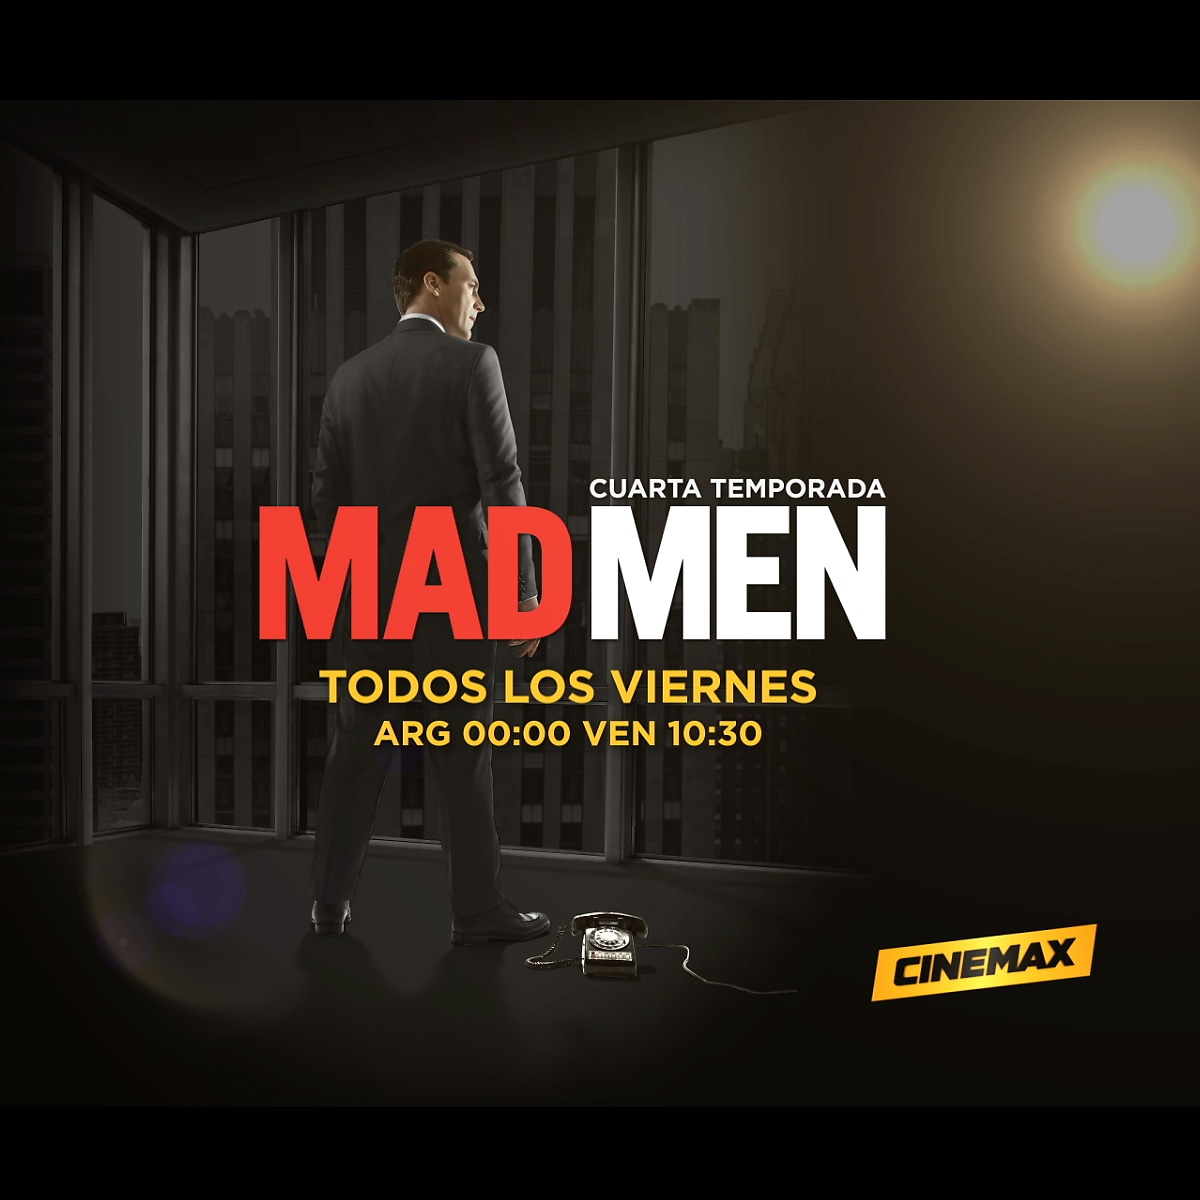 MAD MEN SEASON 4 - END PAGE | Domestika